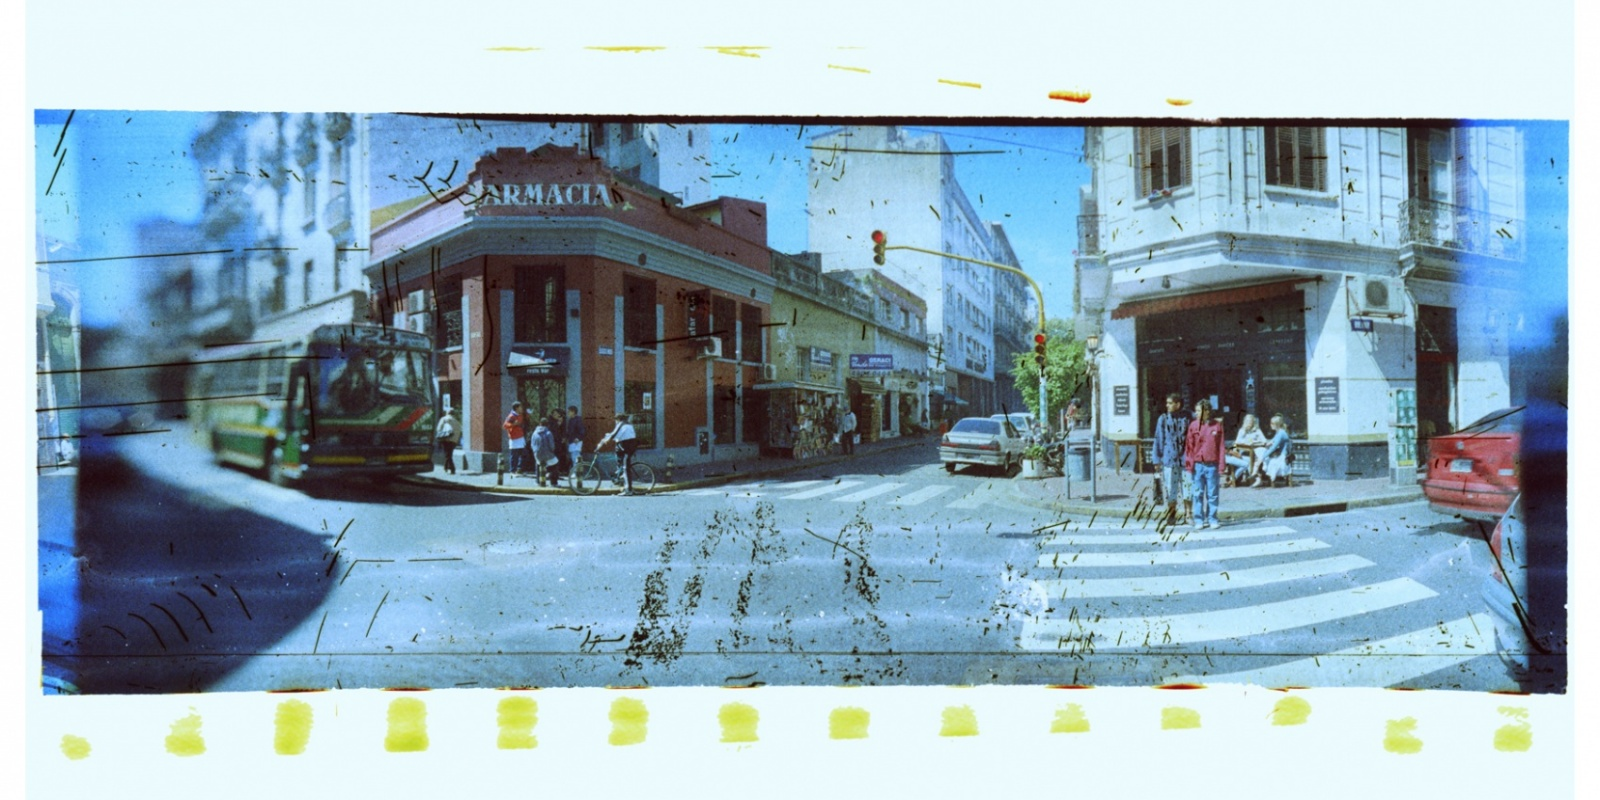 linda cartridge photographer - Las Calles Bolivar II